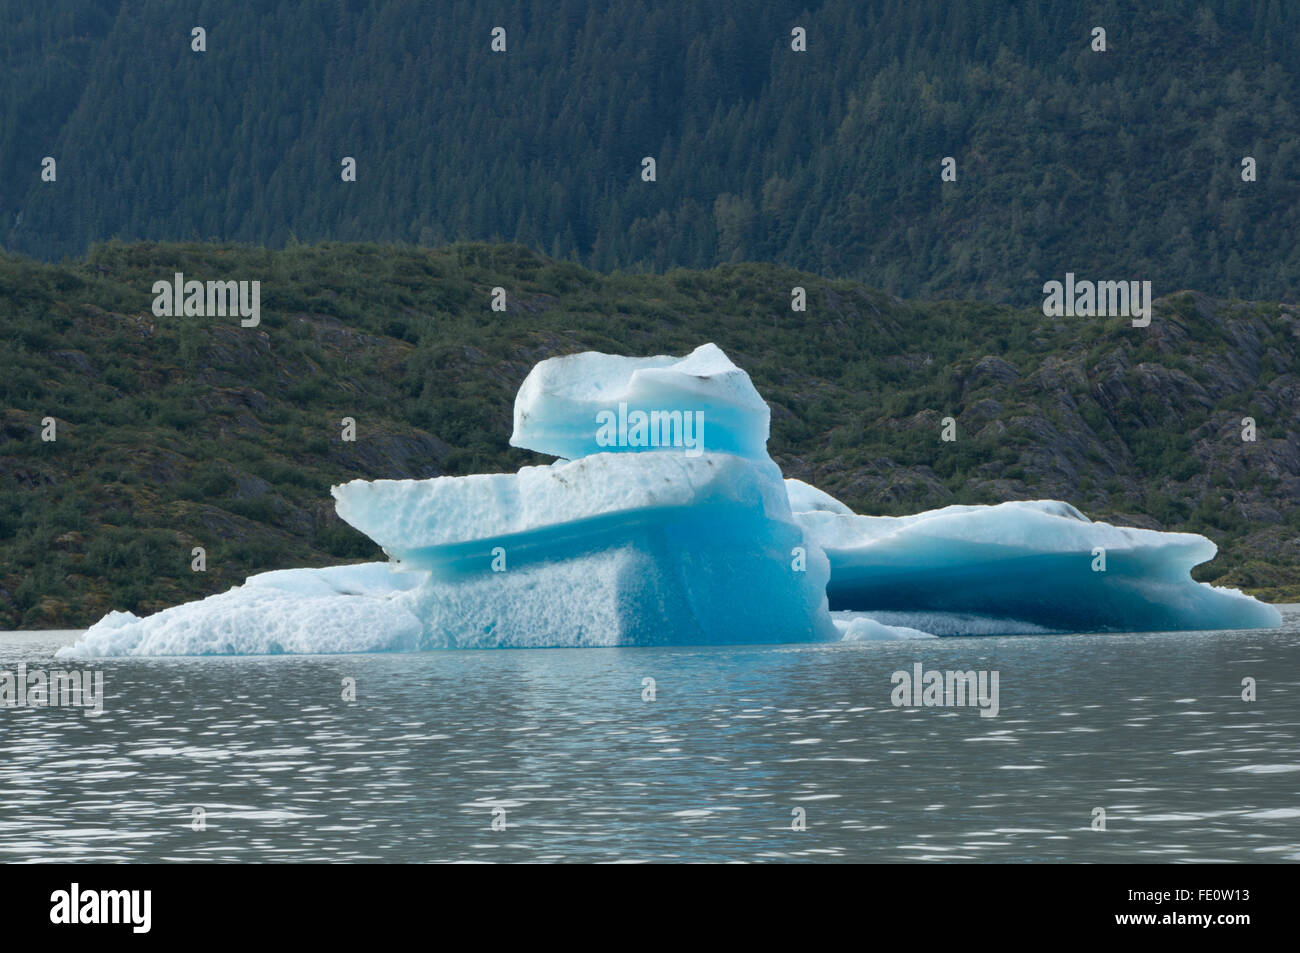 Teddy bear shaped blue iceberg in front of green forest at Mendenhall Glacier area in Juneau, Alaska - Stock Image